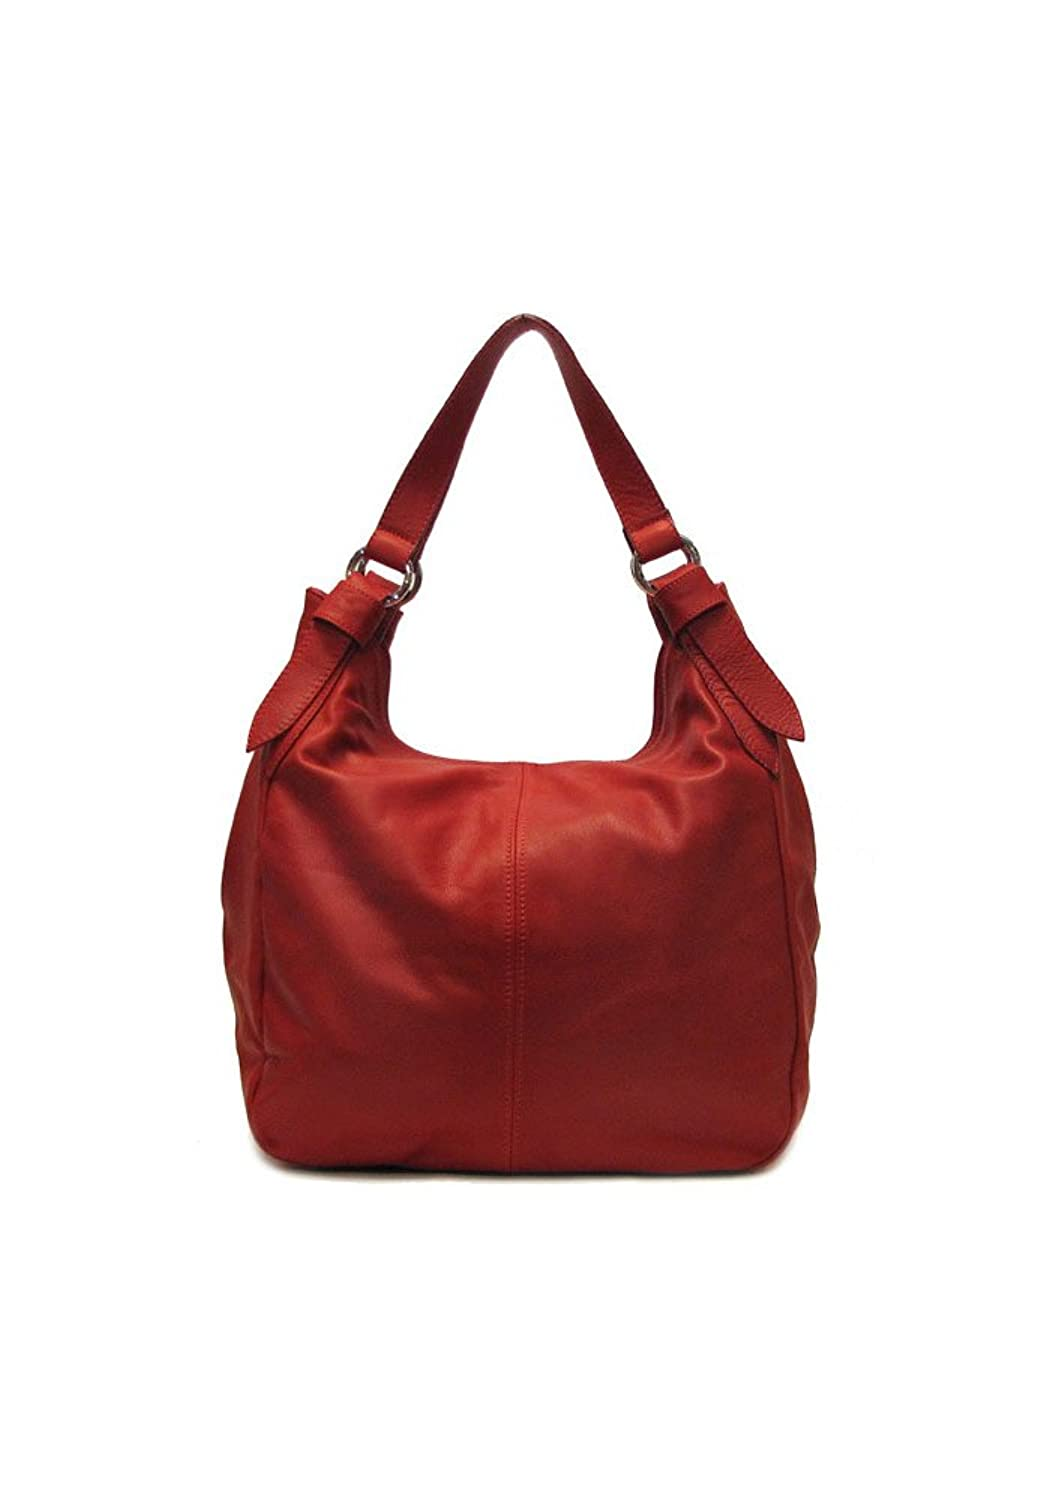 Amazon.com: Siena Leather Hobo Shoulder Bag in Red: Shoes